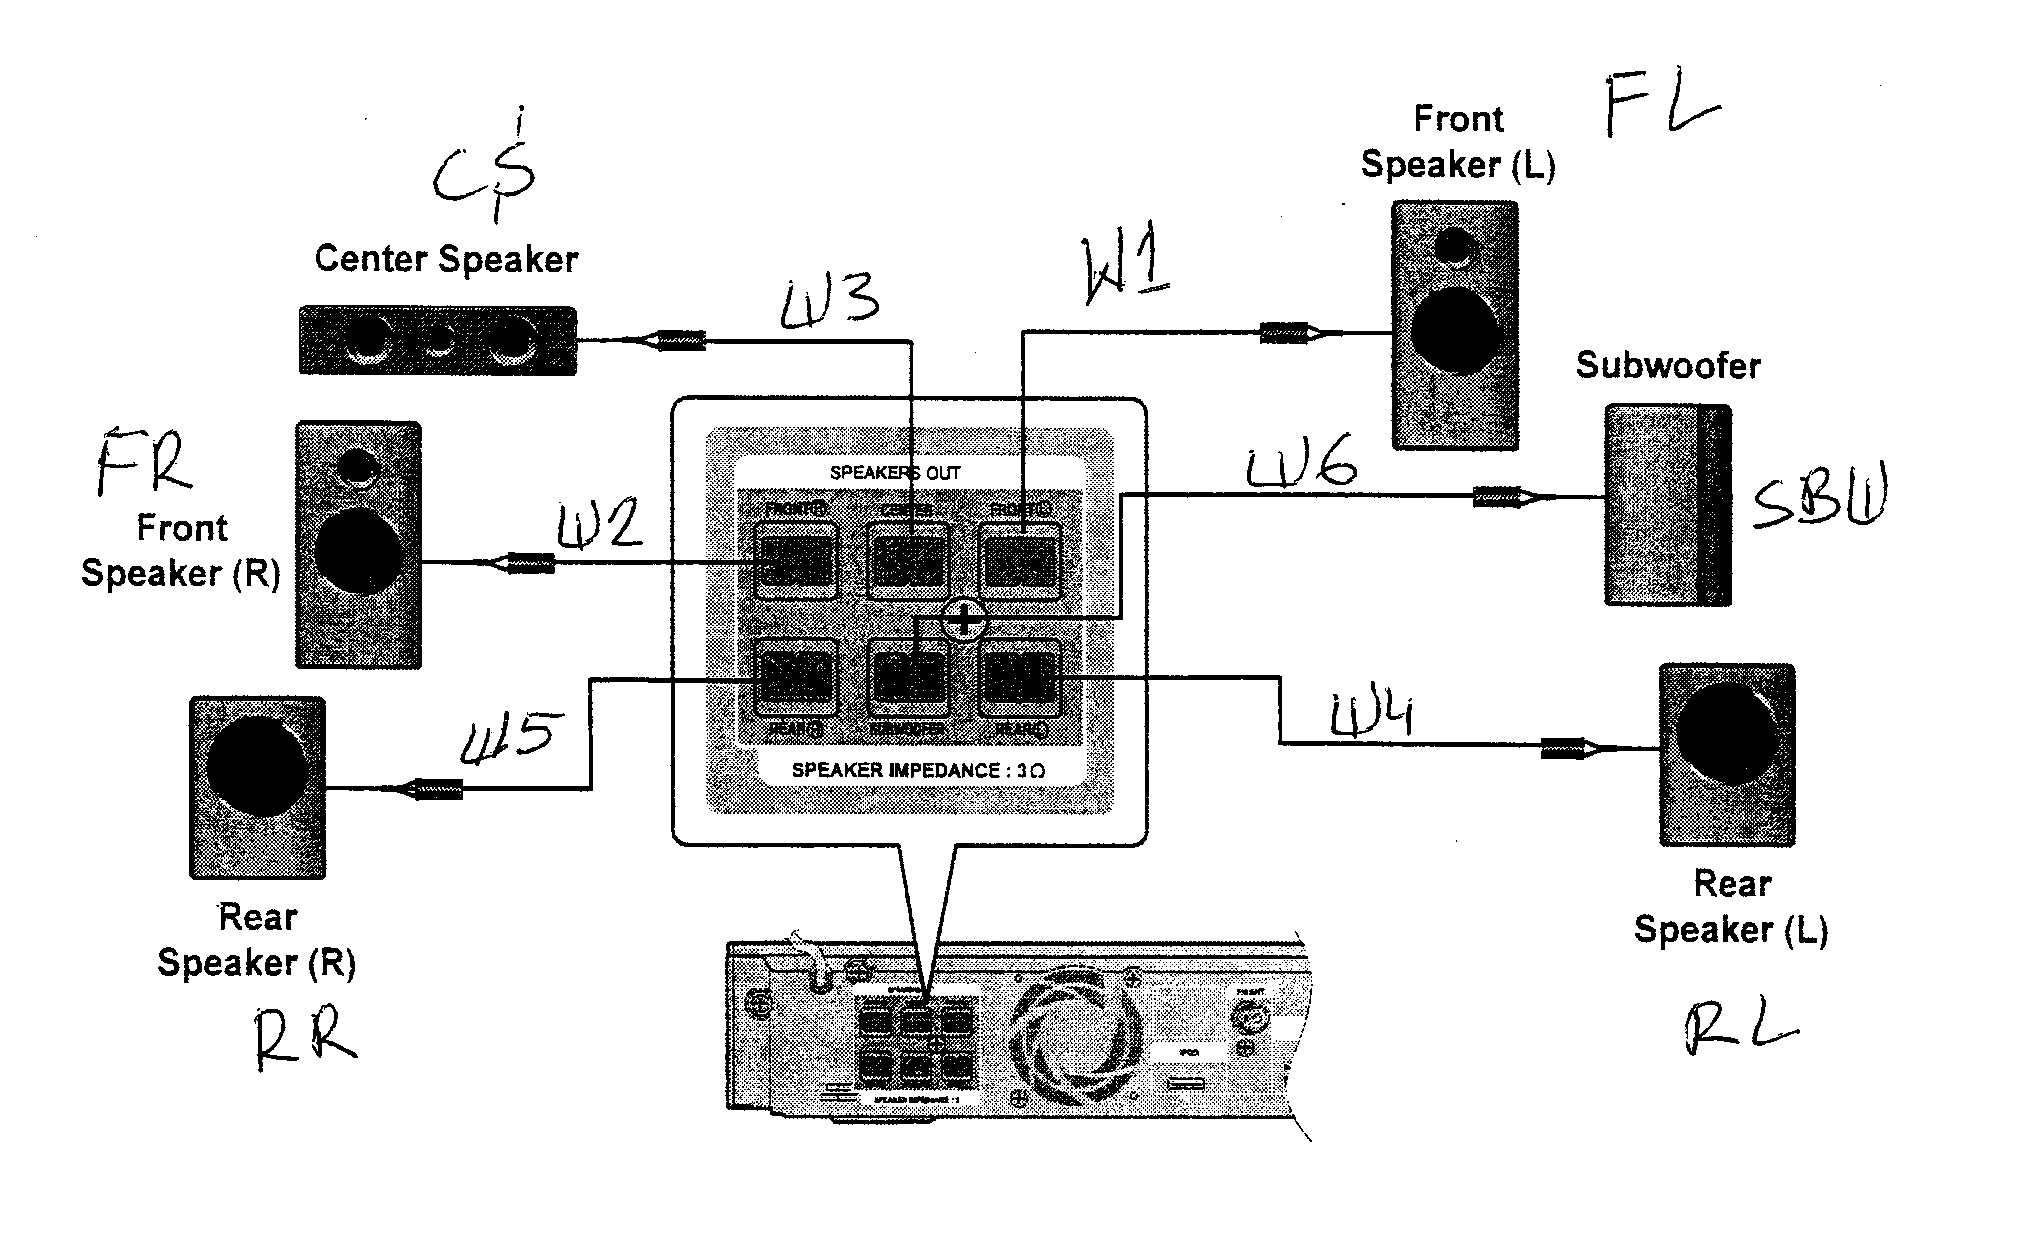 SPEAKERS Diagram & Parts List for Model HTC6600XAA Samsung